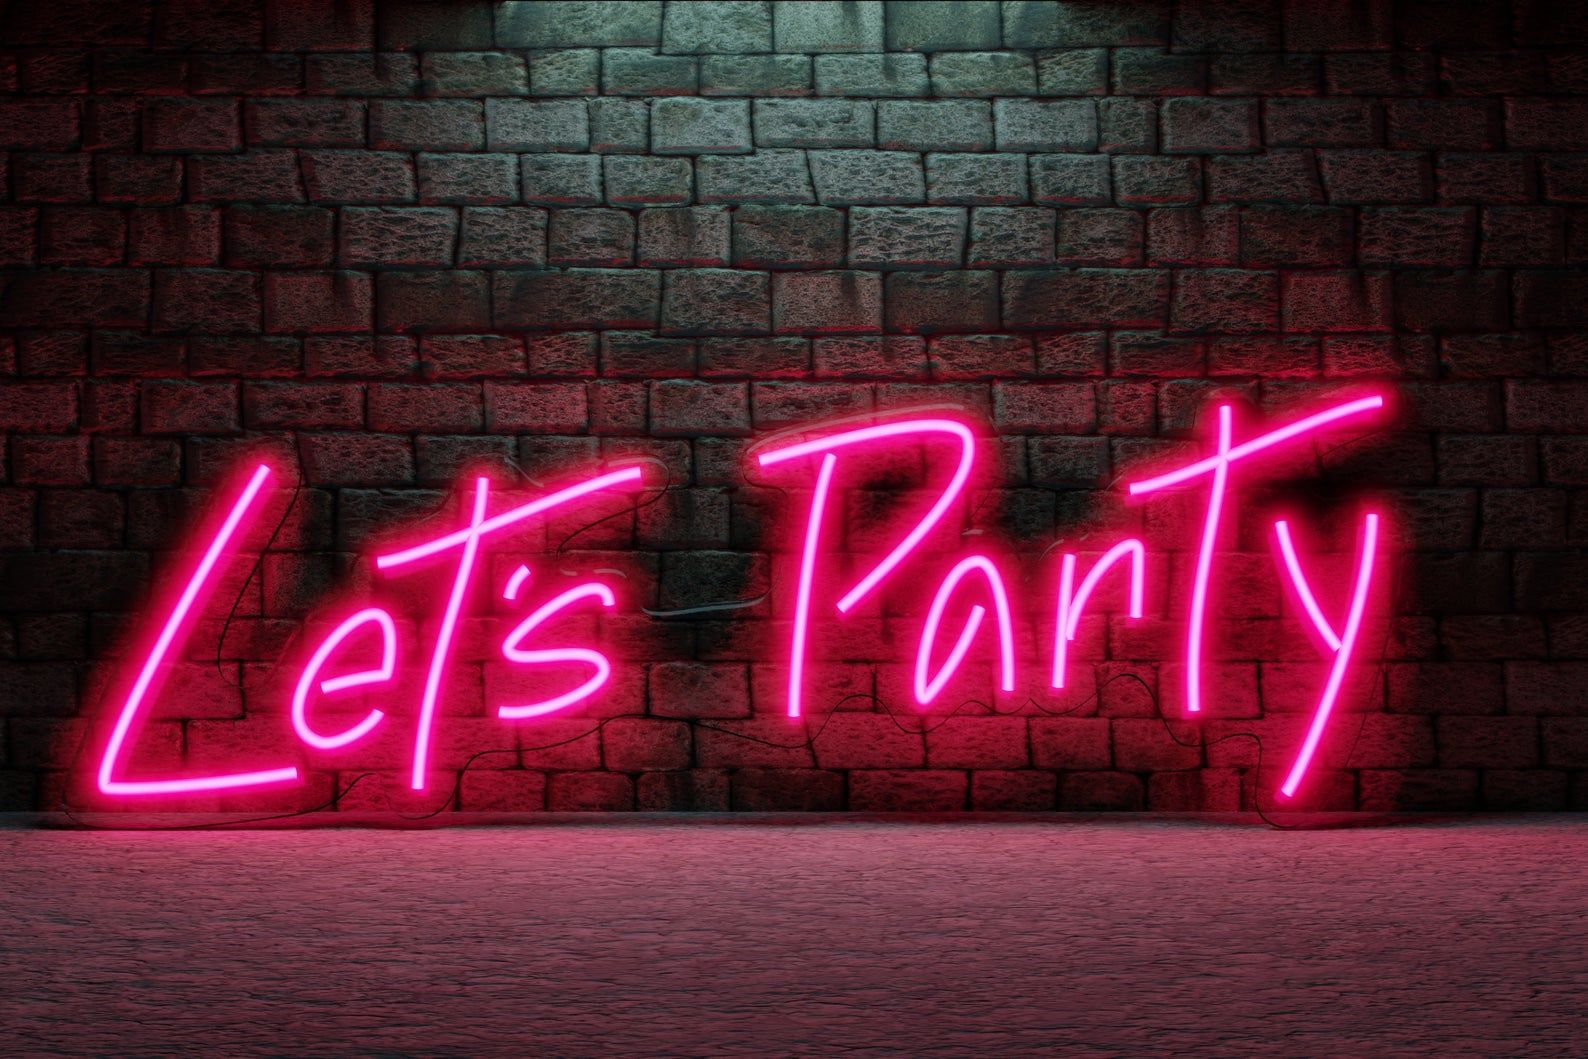 Lets Party Neon Sign Led Neon Light Neon Sign Custom Etsy Neon Sign Bedroom Neon Signs Pink Neon Wallpaper Download and use 2,000+ aesthetic stock photos for free. lets party neon sign led neon light